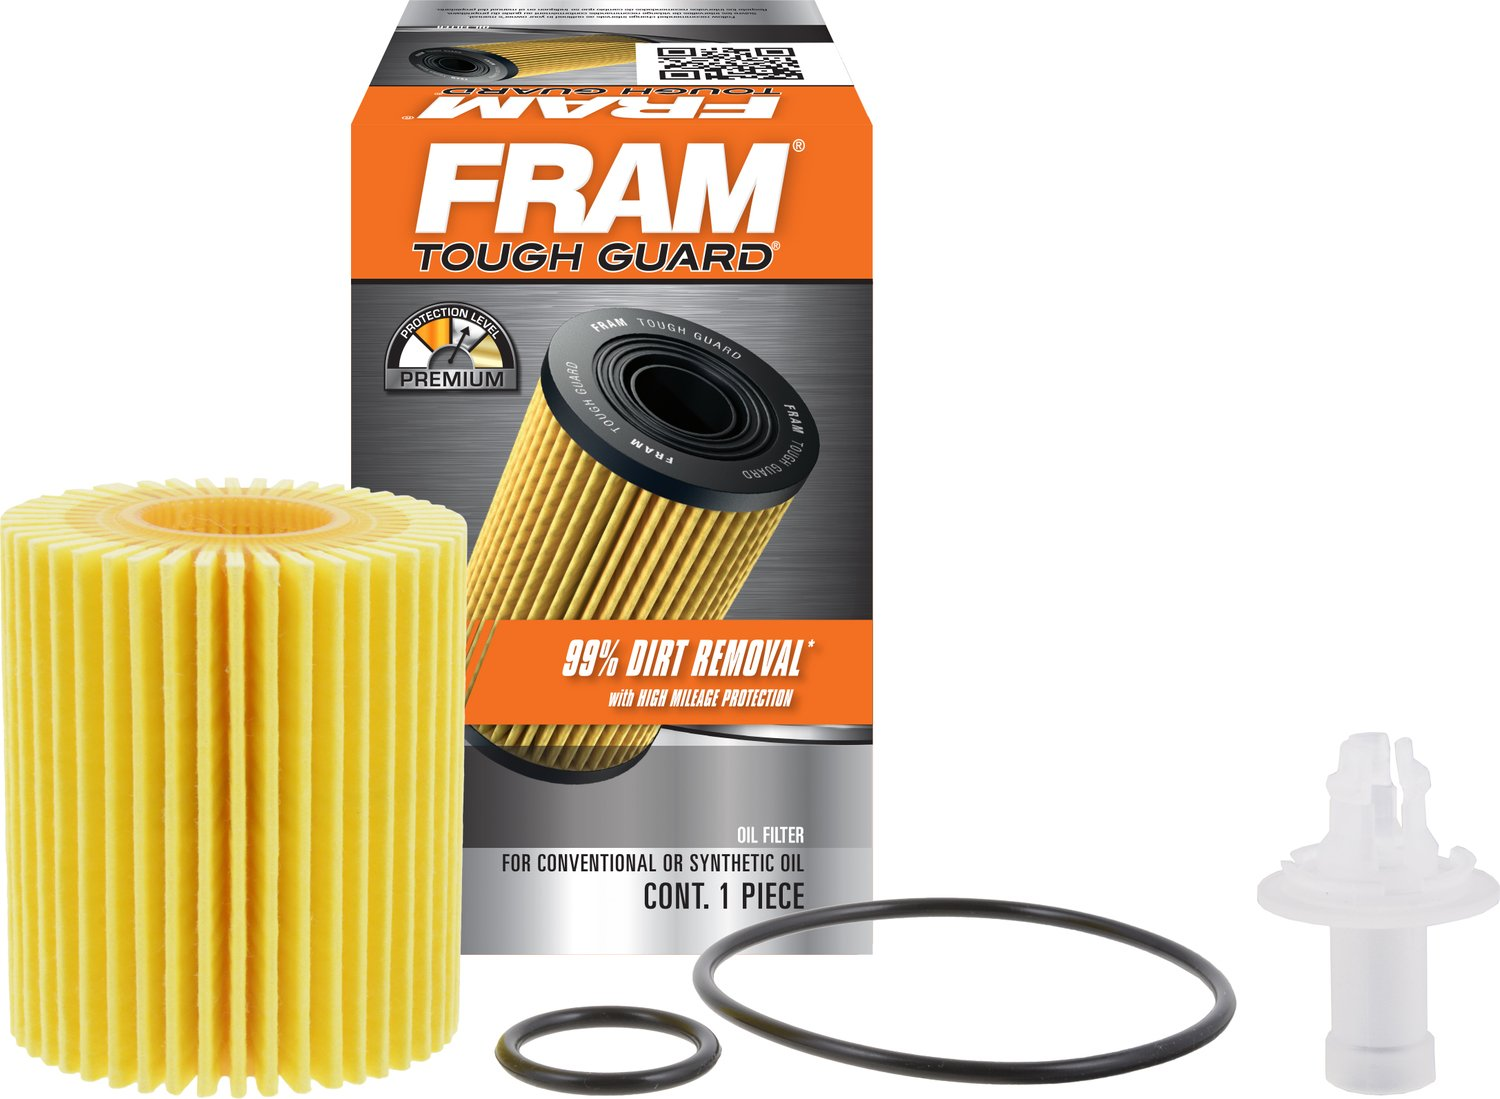 FRAM TG10158 Tough Guard Full-Flow Cartridge Oil Filter